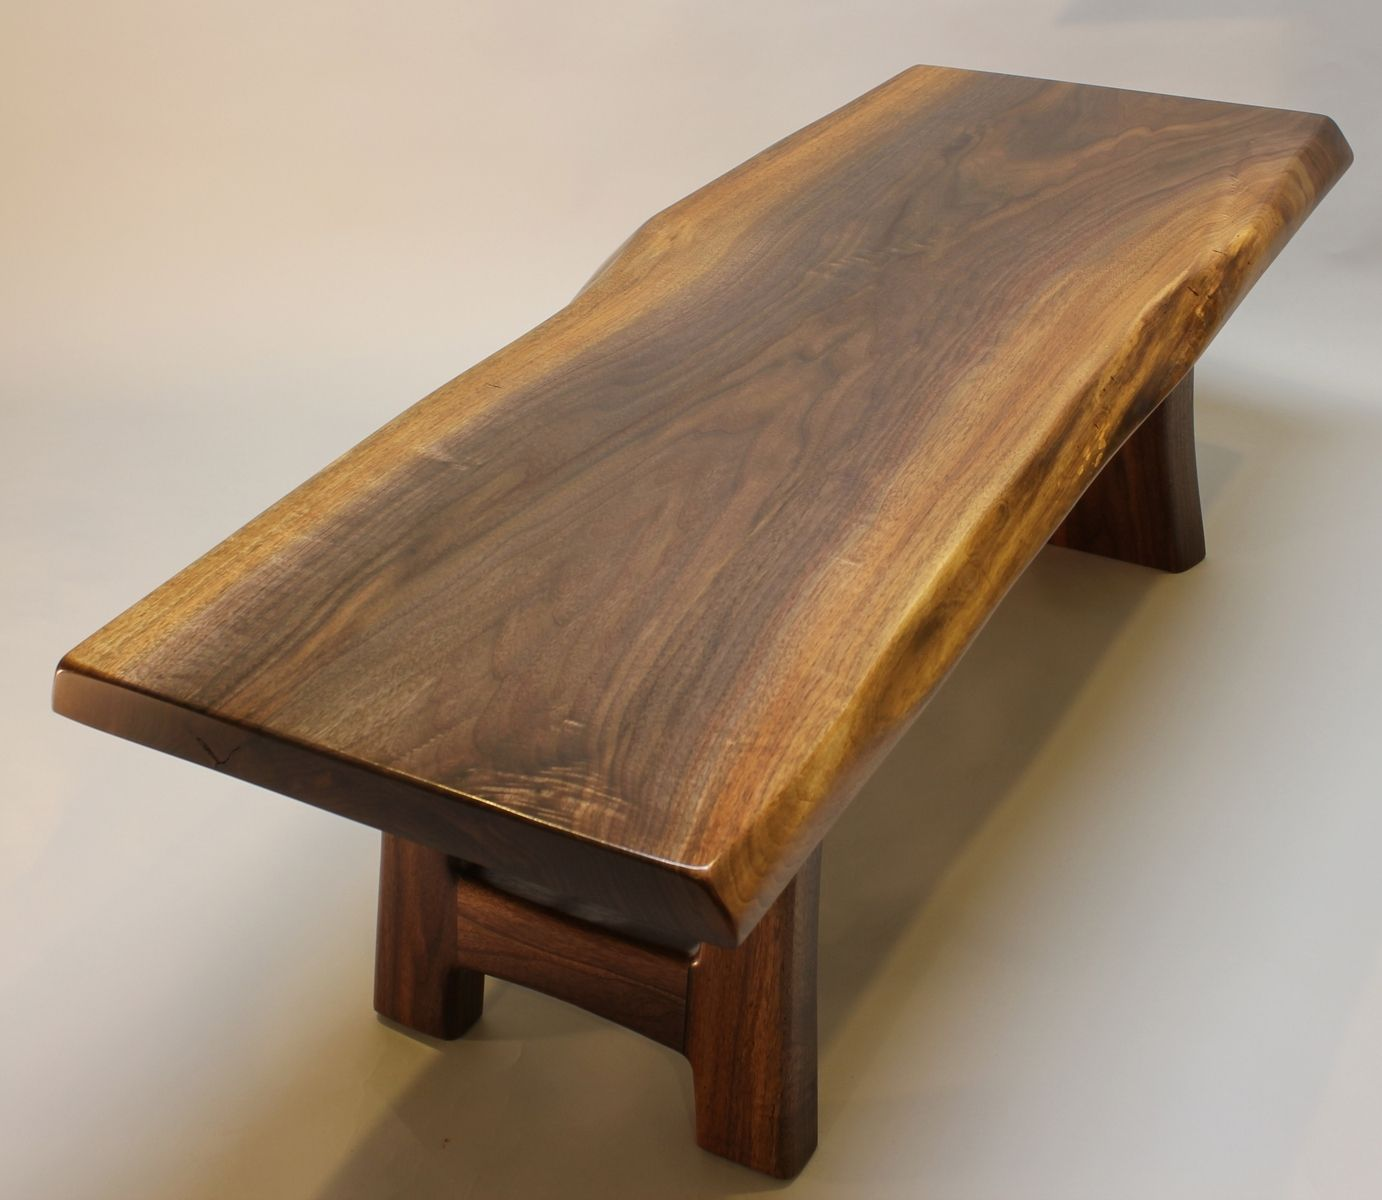 Handmade Black Walnut Live Edge Coffee Table By J R